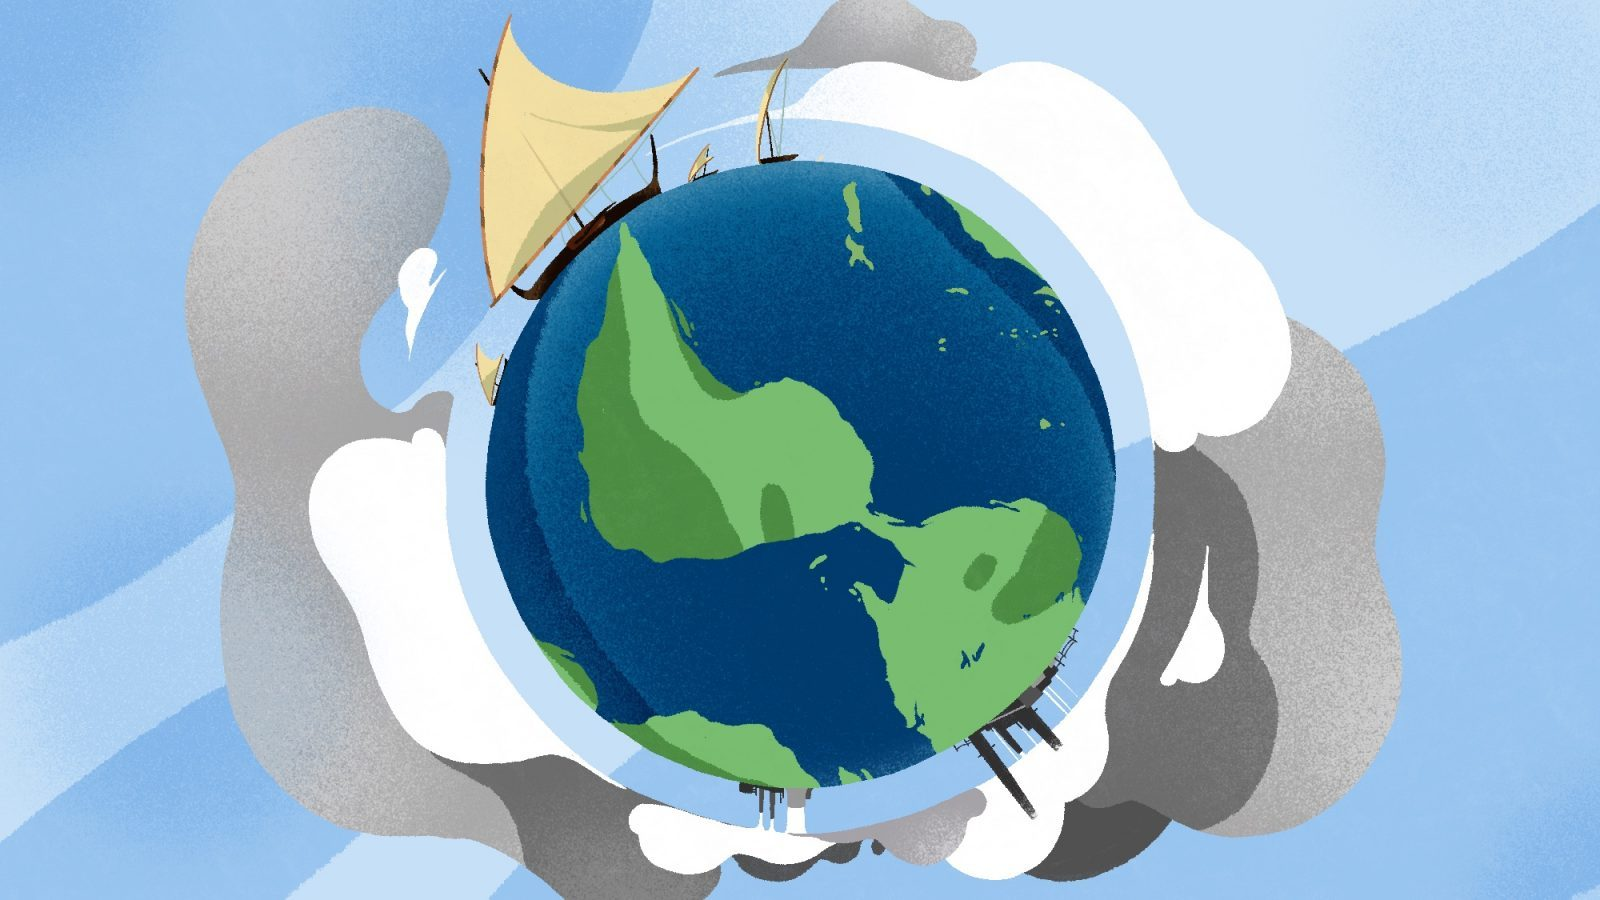 Illustration of a traditional Chamorro canoe sailing around a polluted earth.